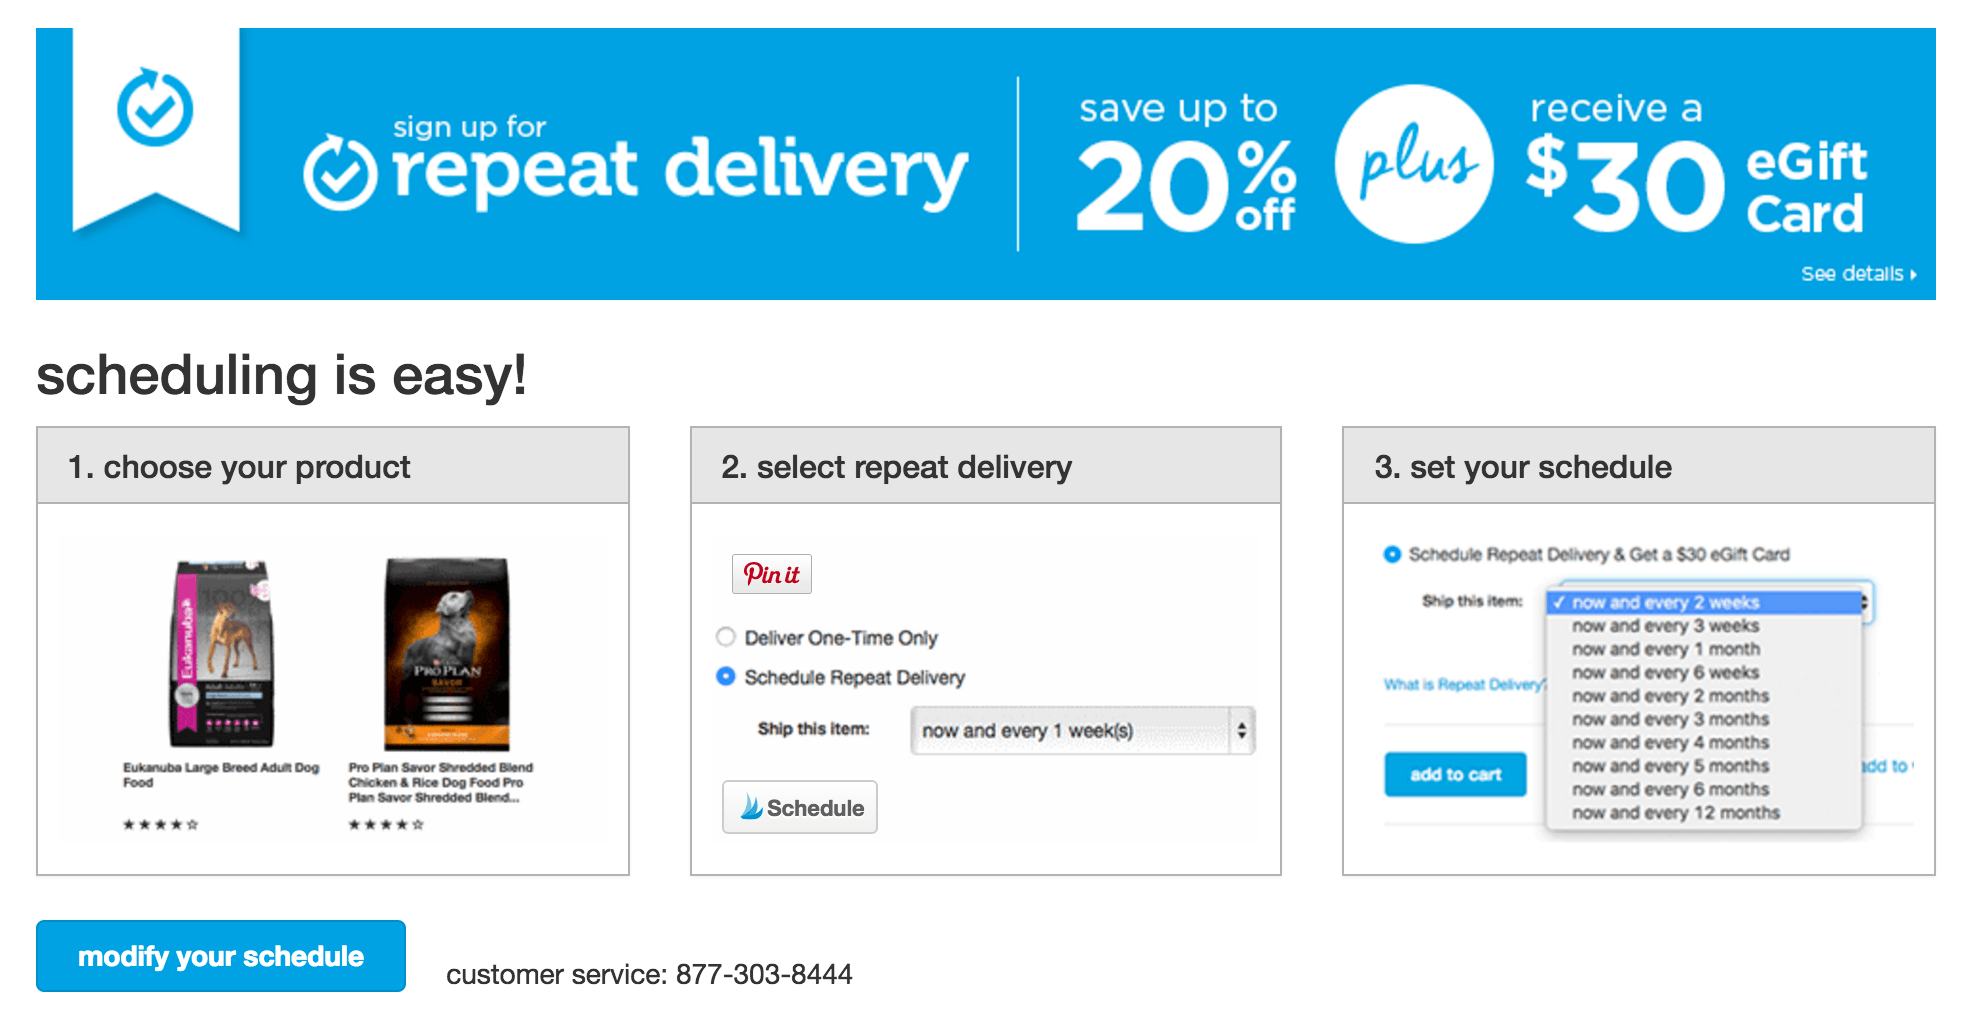 It is easy to sign up for Petco repeat delivery service.